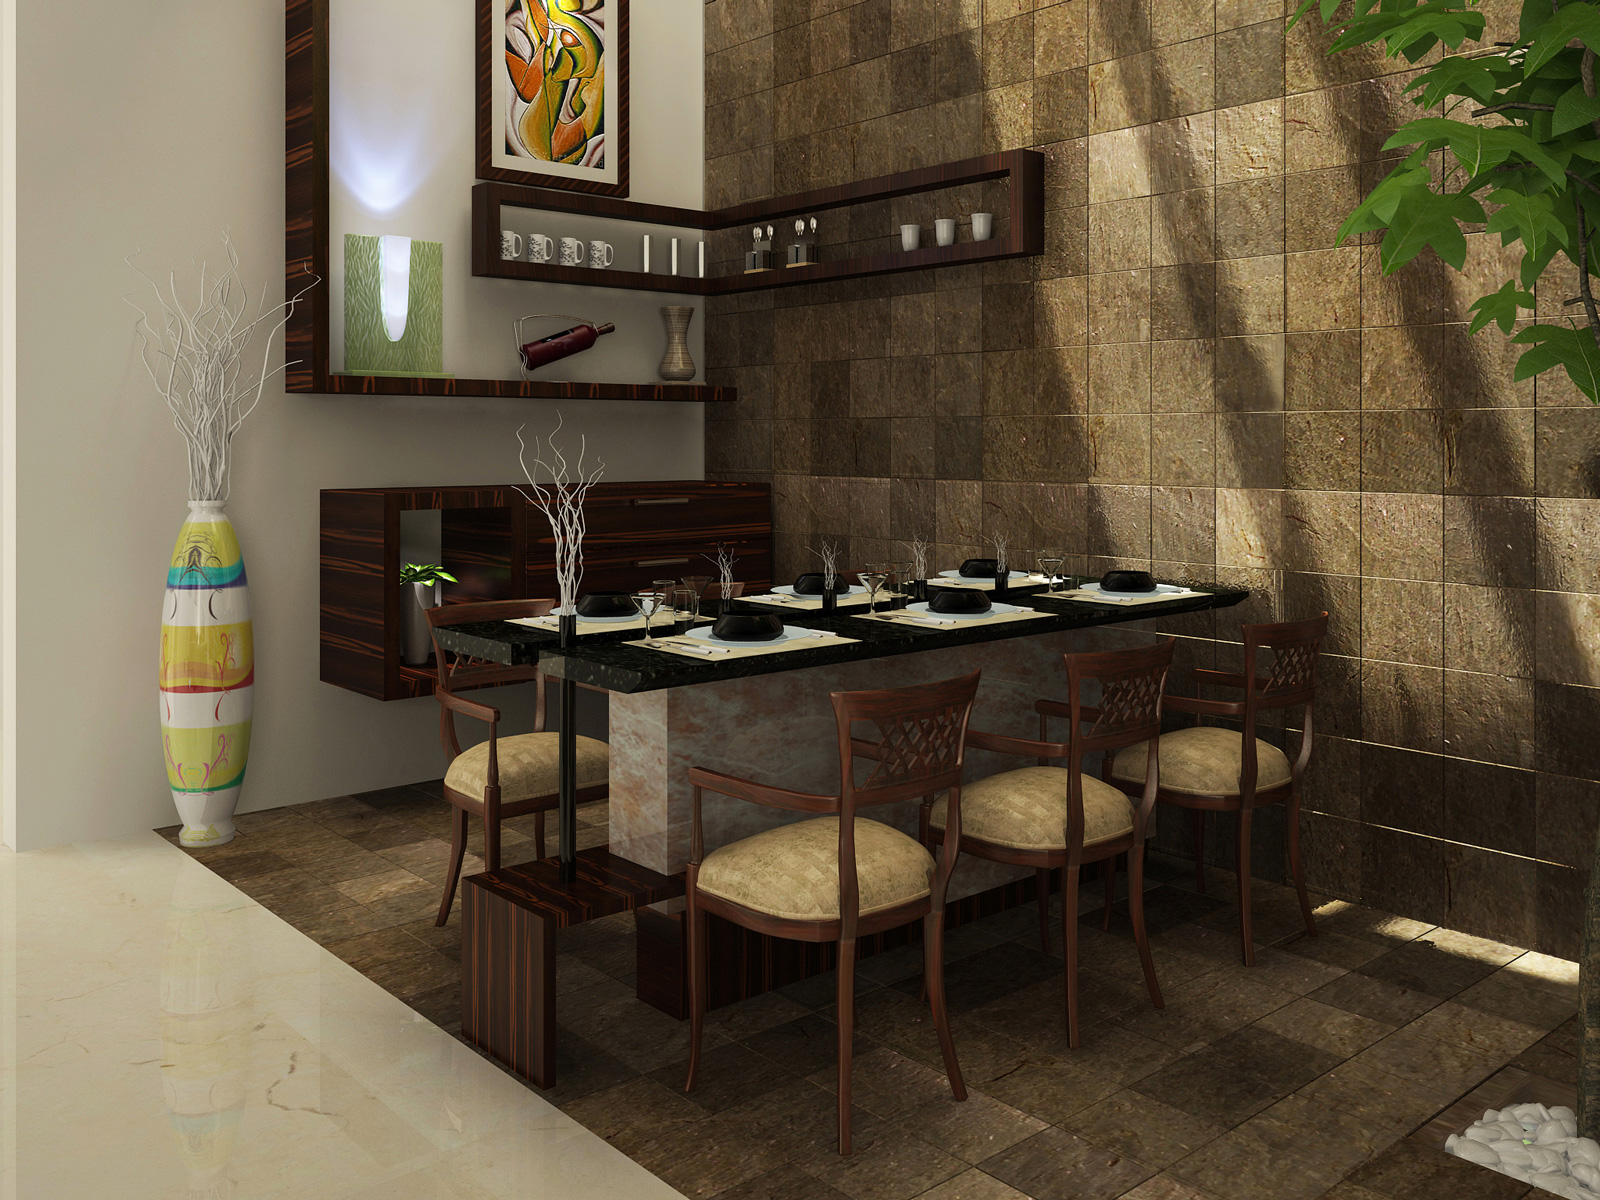 Kerala dining room design style photos home interior in india for Dining hall interior design